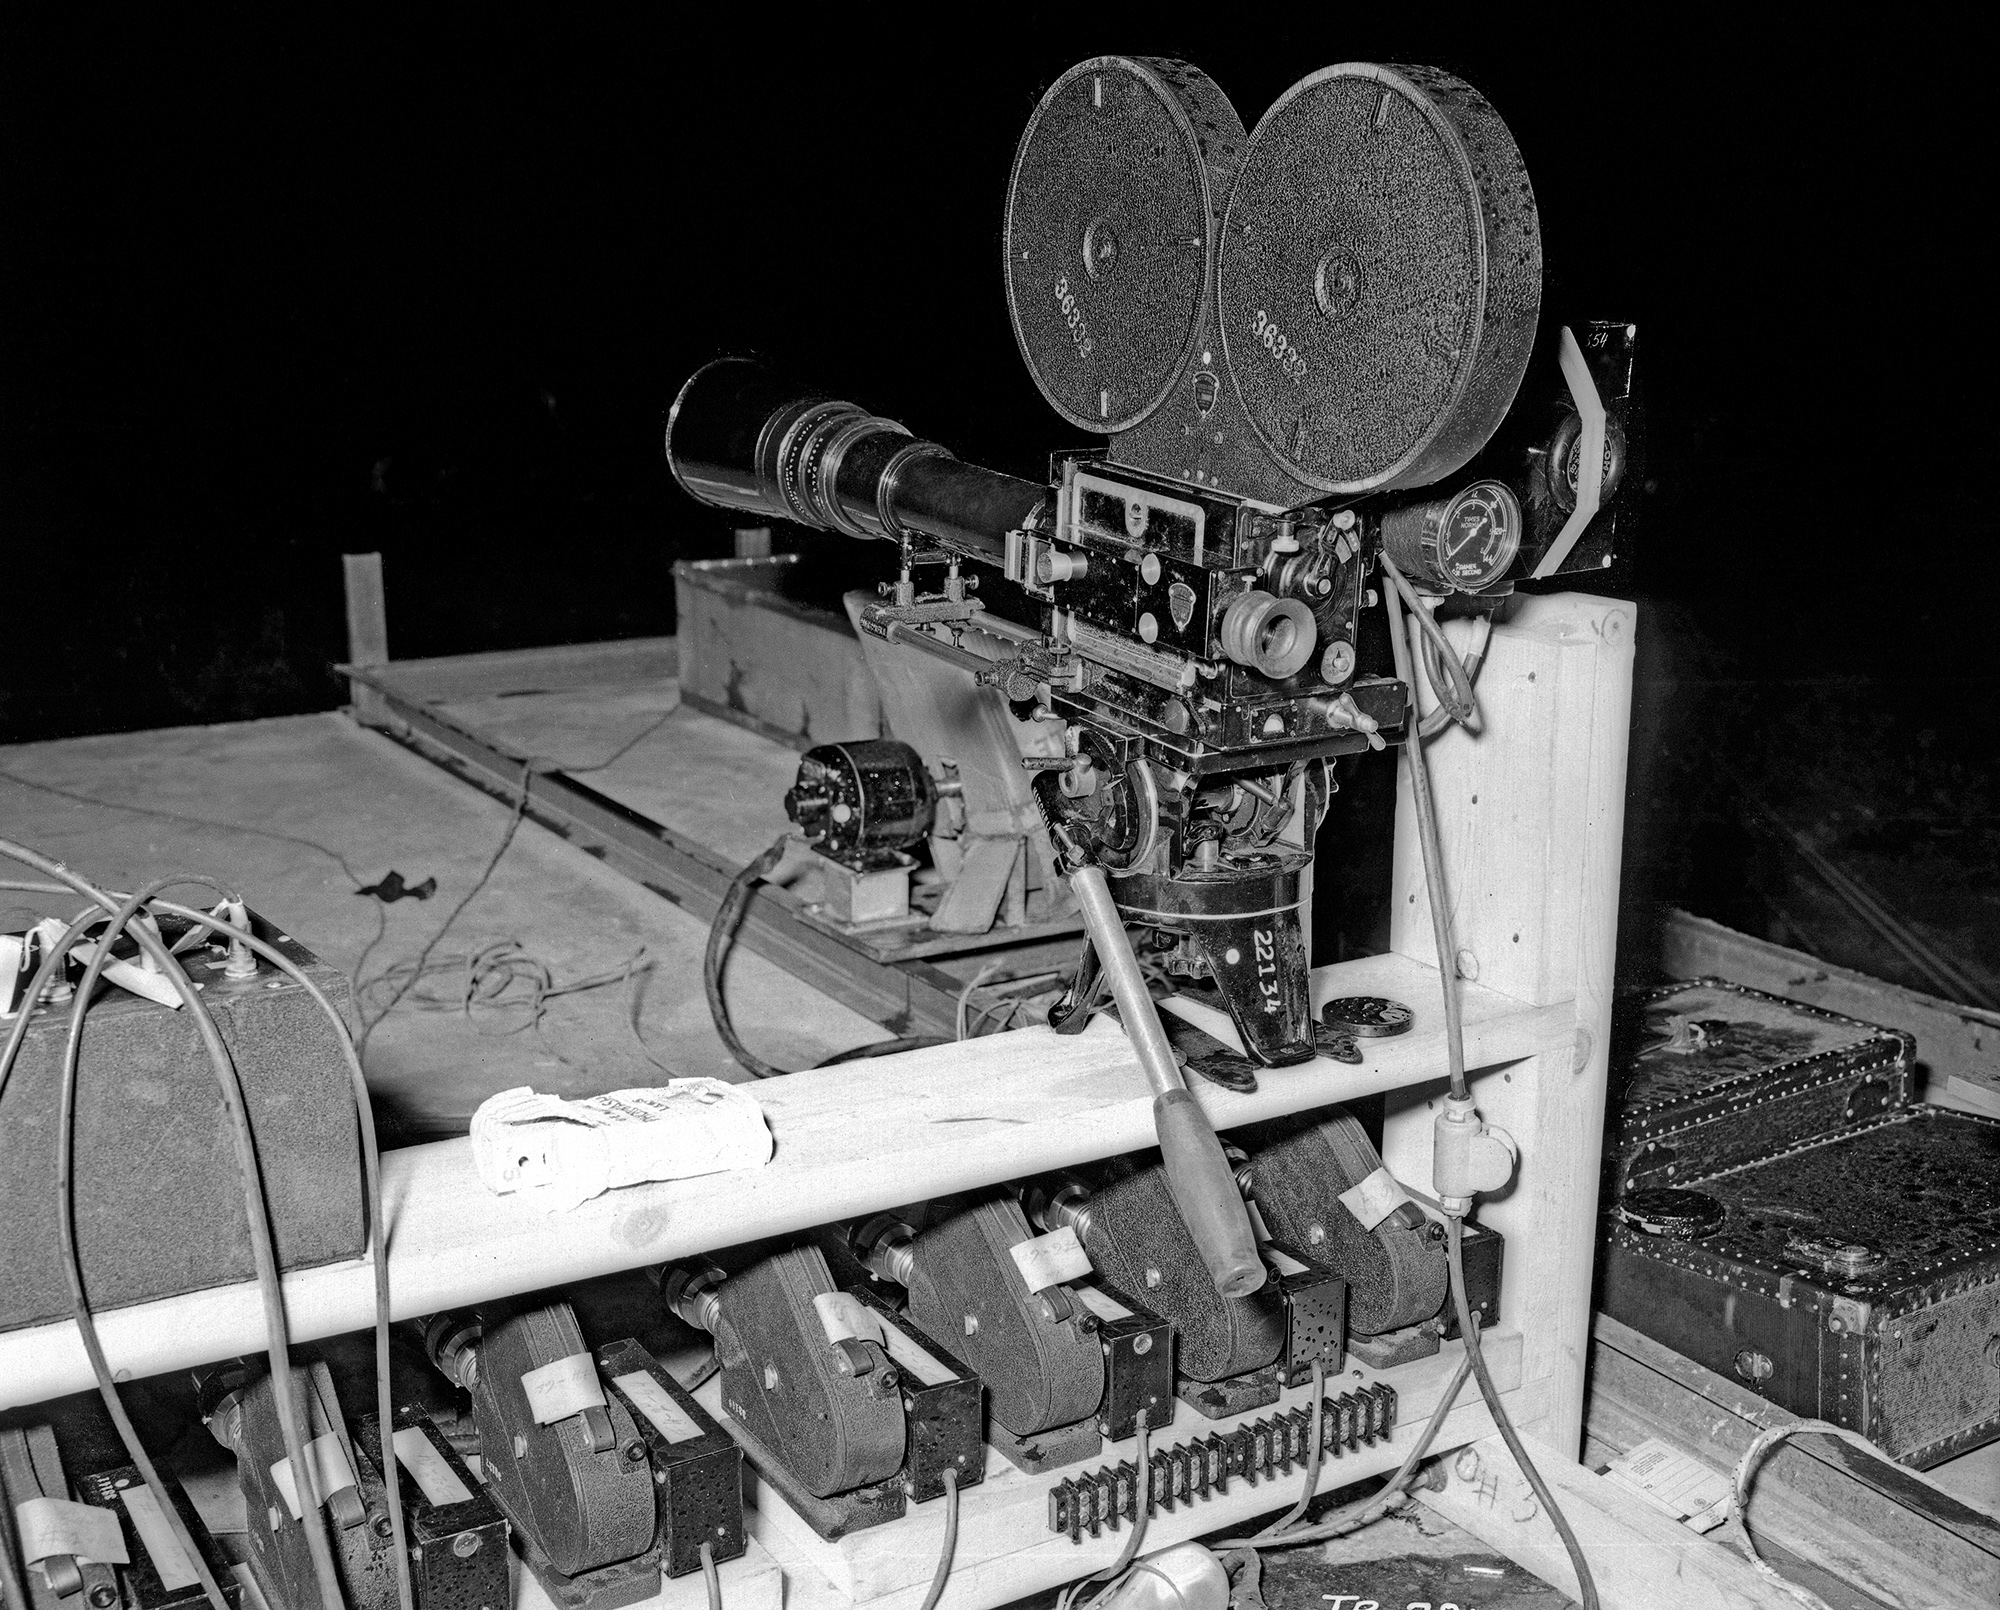 10,000 N shows camera installation on roof of shelter, Cine E cameras under shelf, 24 Mitchell on shelf, B & L Spectrograph in background